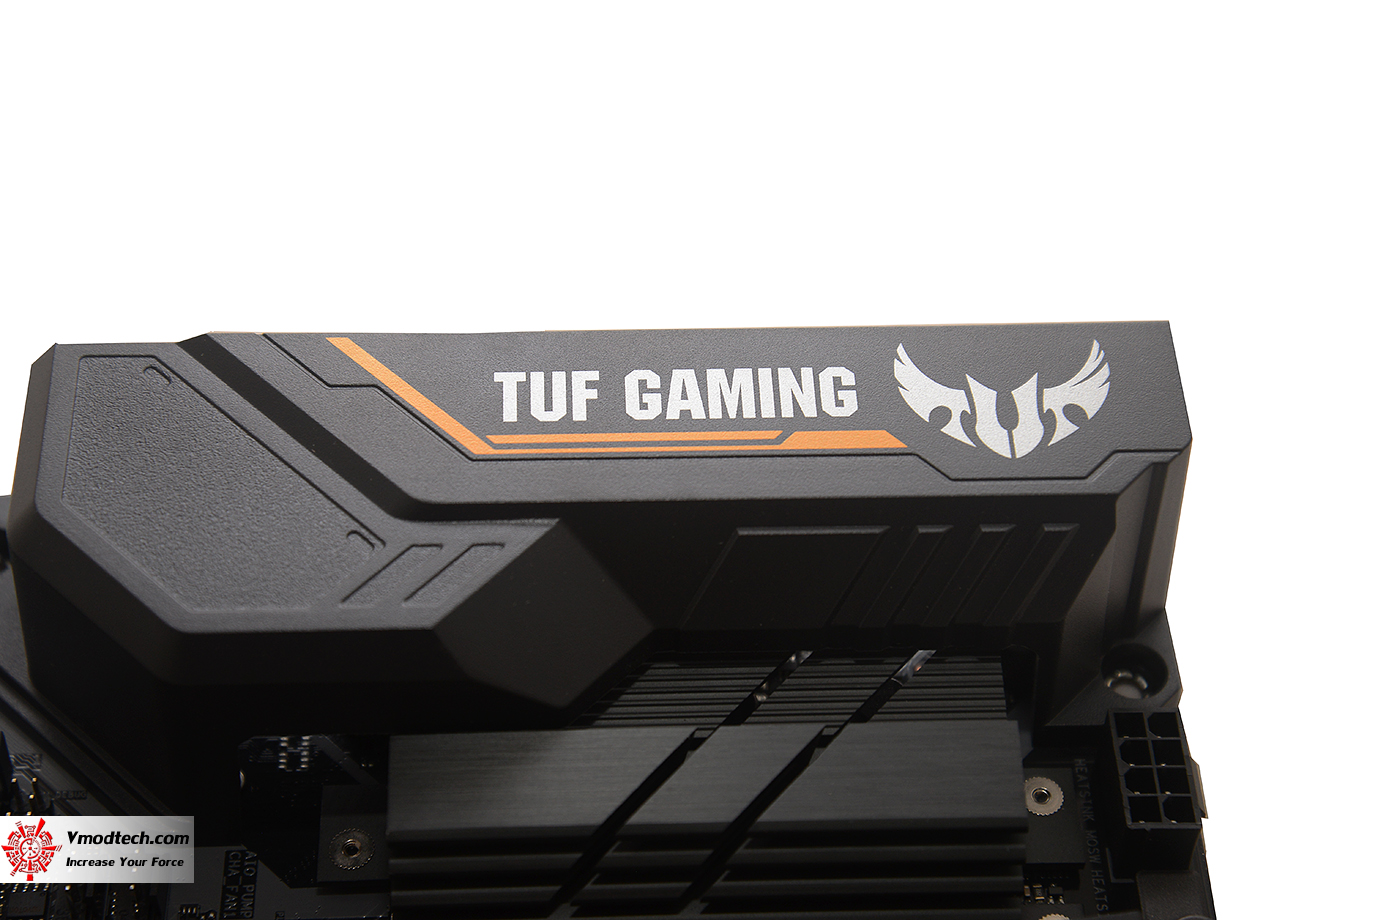 dsc 2293 ASUS TUF Z390M PRO GAMING REVIEW